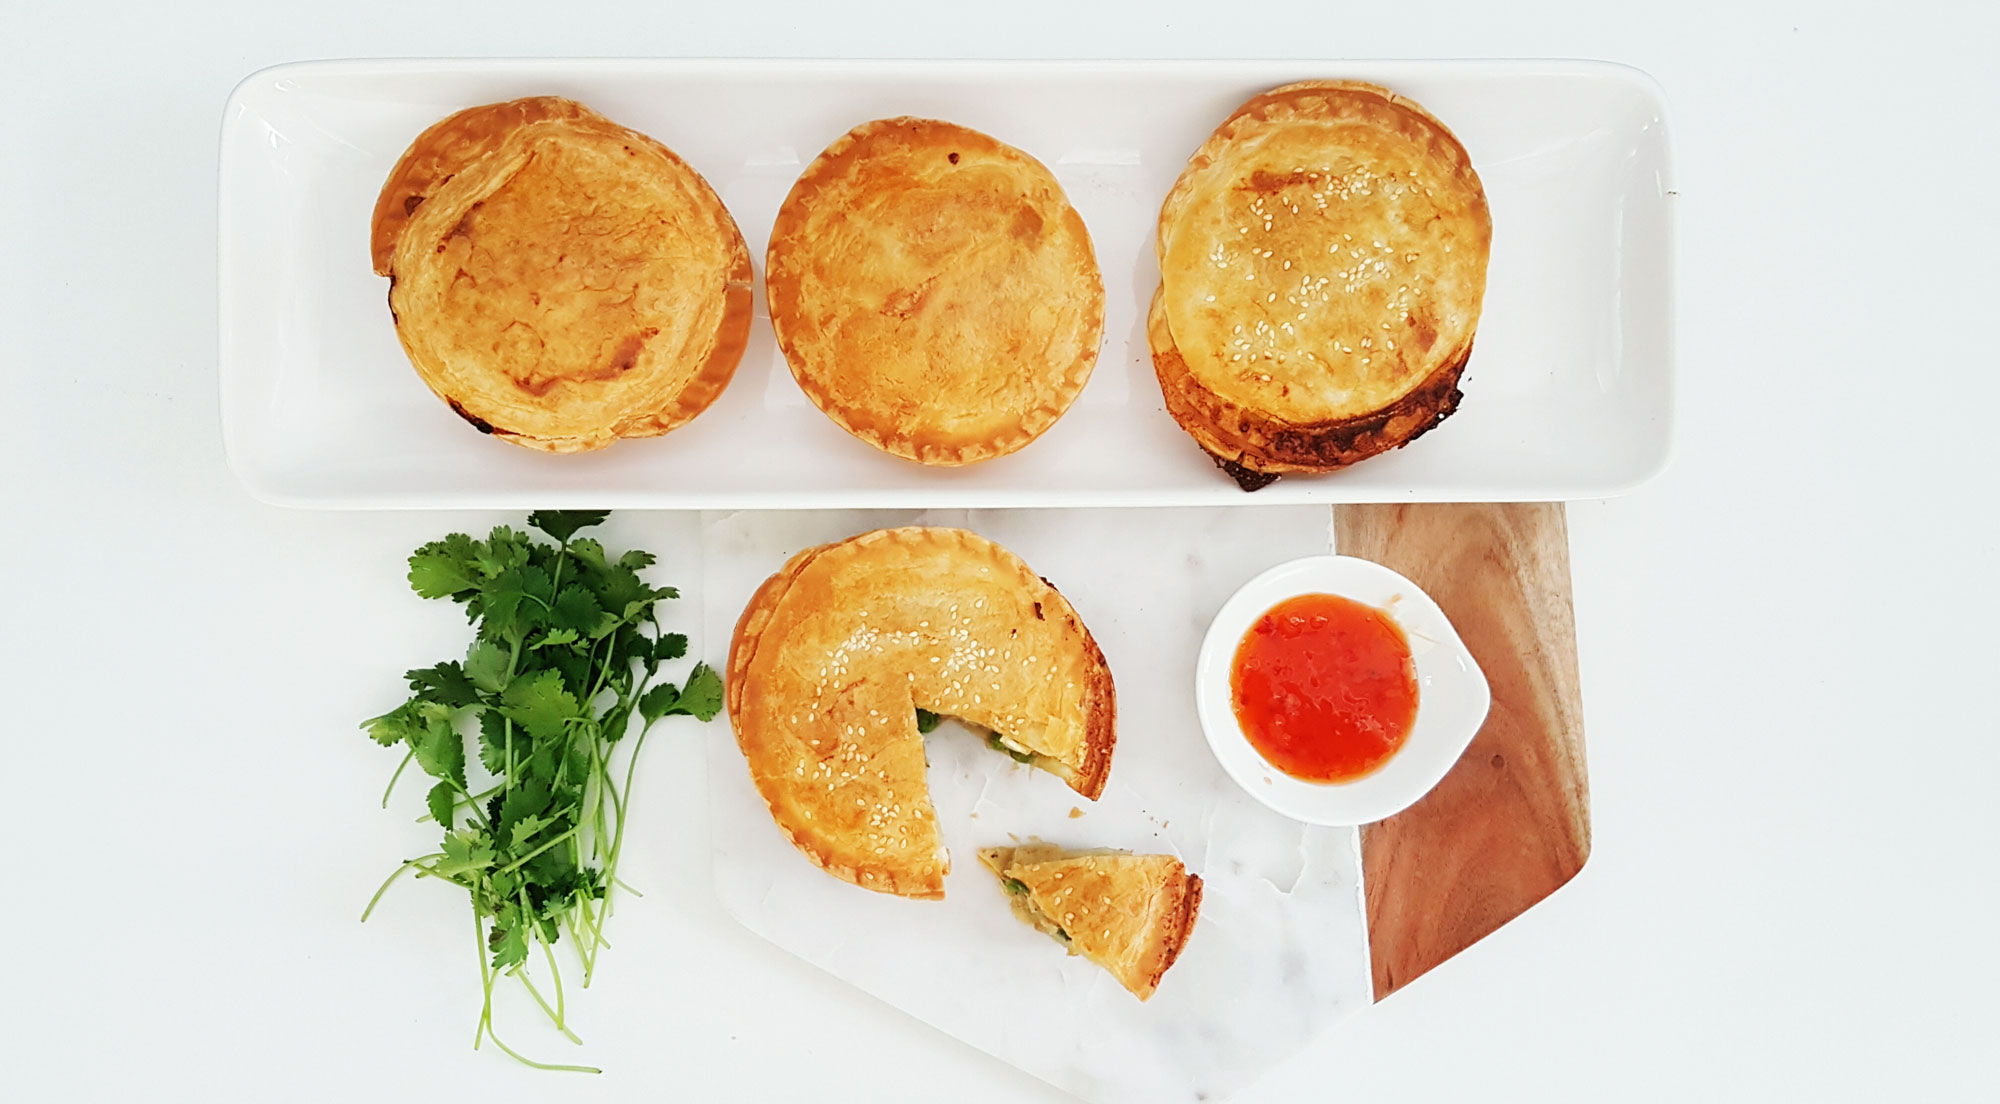 Thai Chicken Pies – Dinner is served!